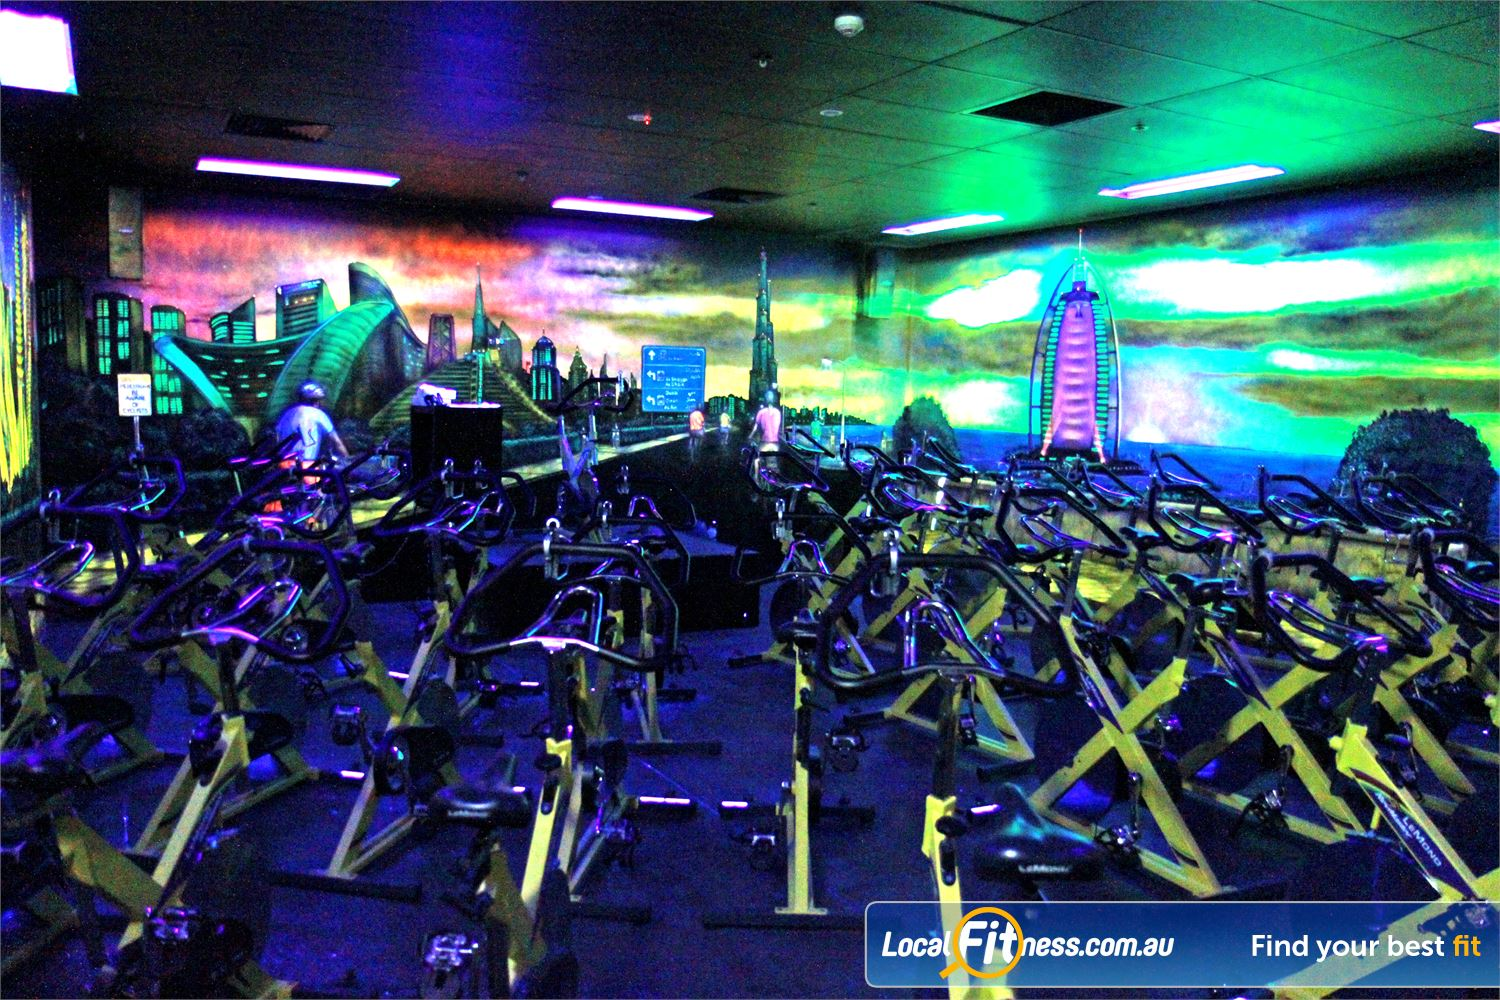 Goodlife Health Clubs Near Medindie Dedicated North Adelaide spin cycle studio.